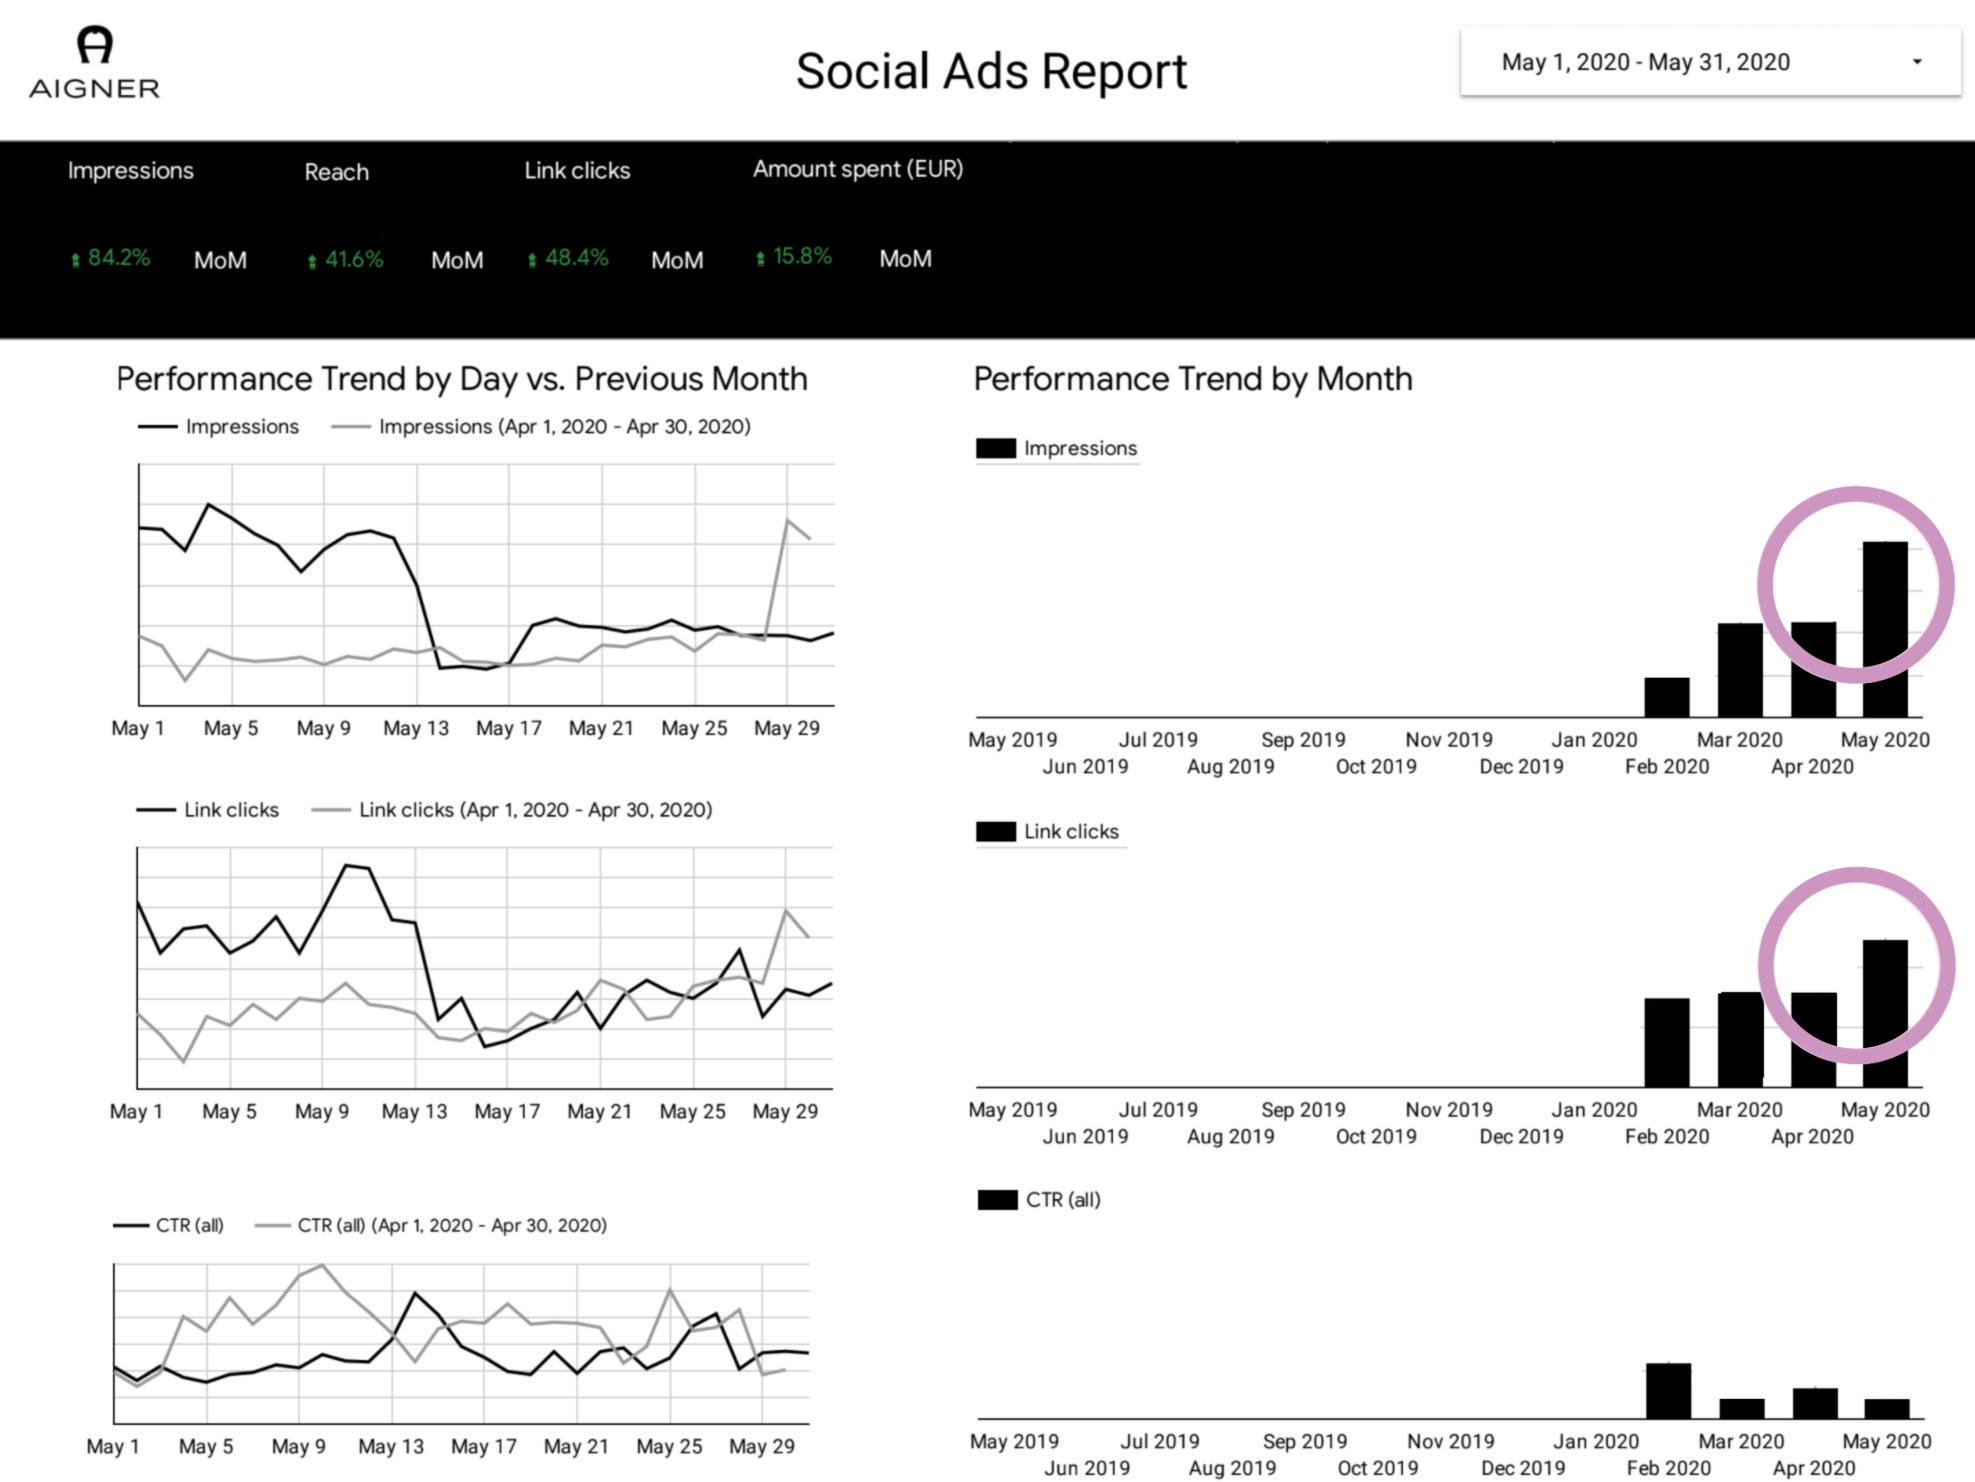 Aigner social ads report overview Japanese PPC